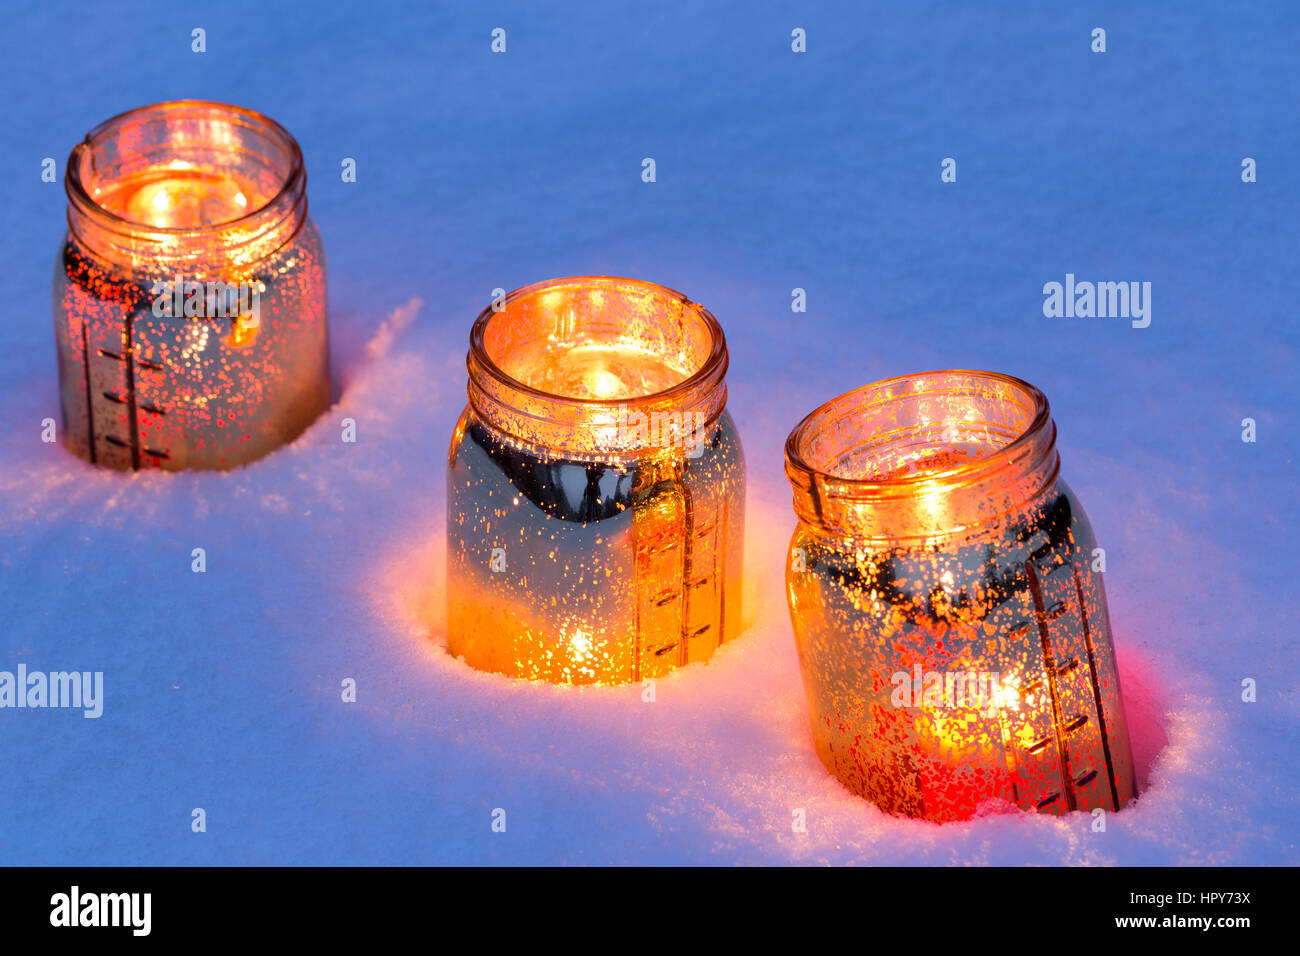 Decorative jar lanterns with candles glowing in snow Stock Photo